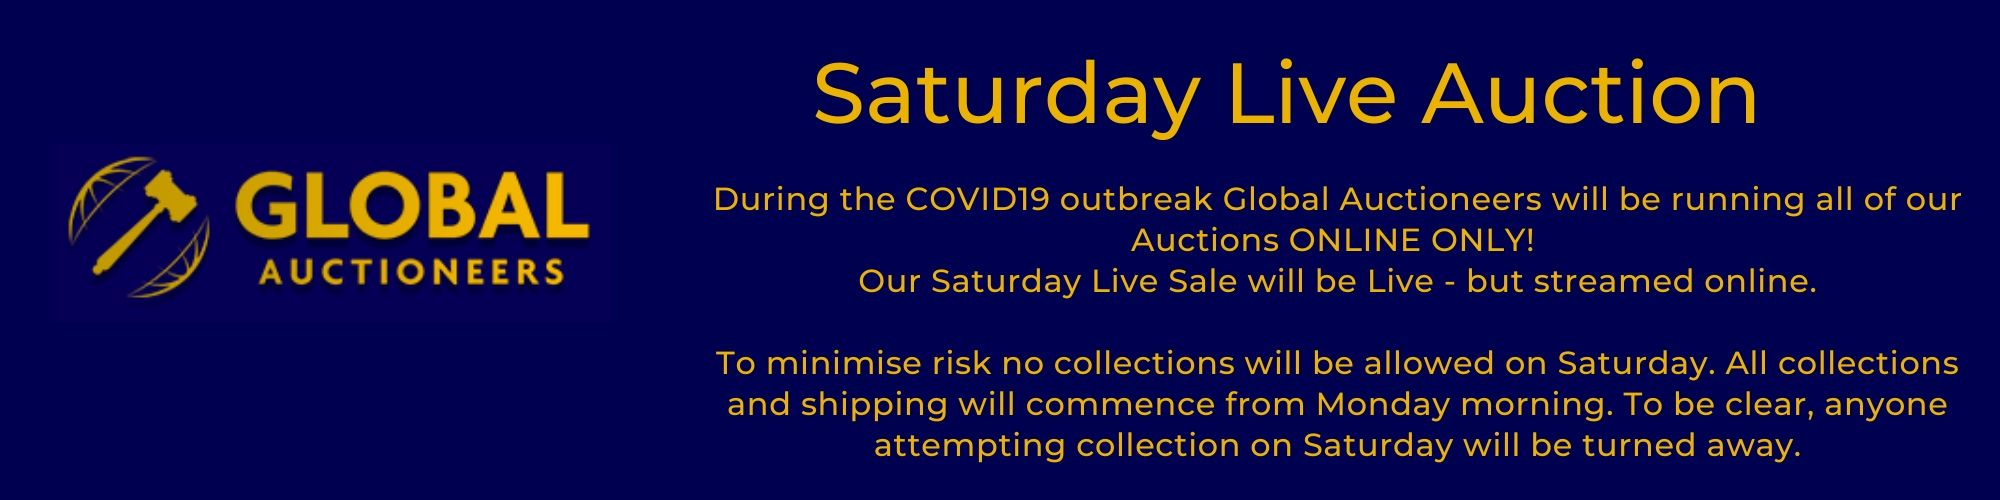 Saturday Live Auction - streamed ONLINE